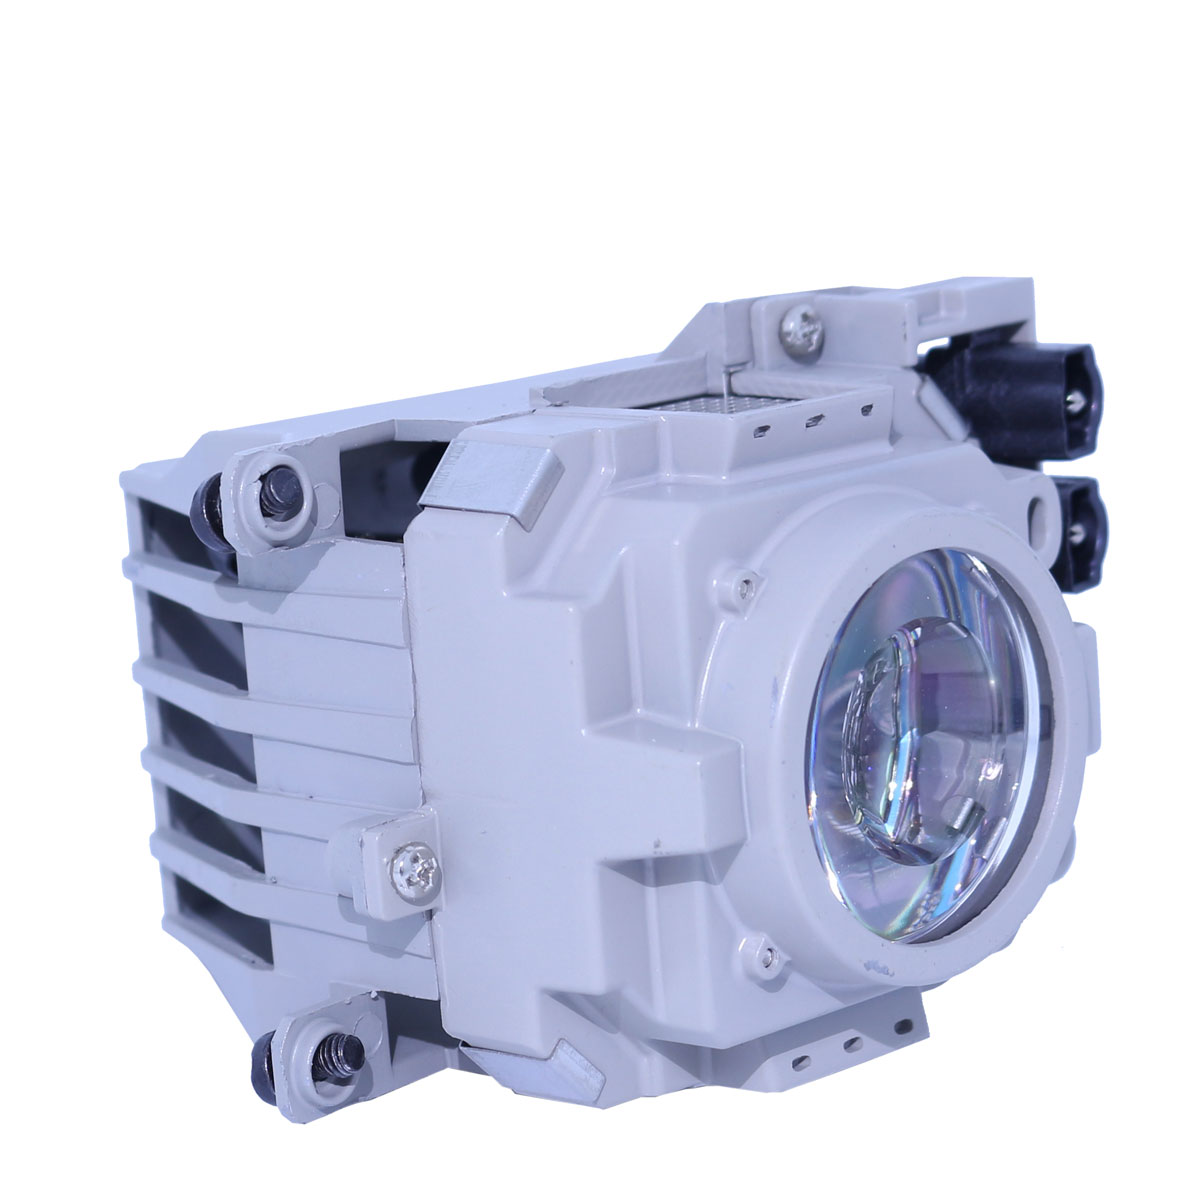 Original Philips Projector Lamp Replacement with Housing for Hitachi DXG1051 - image 3 of 5